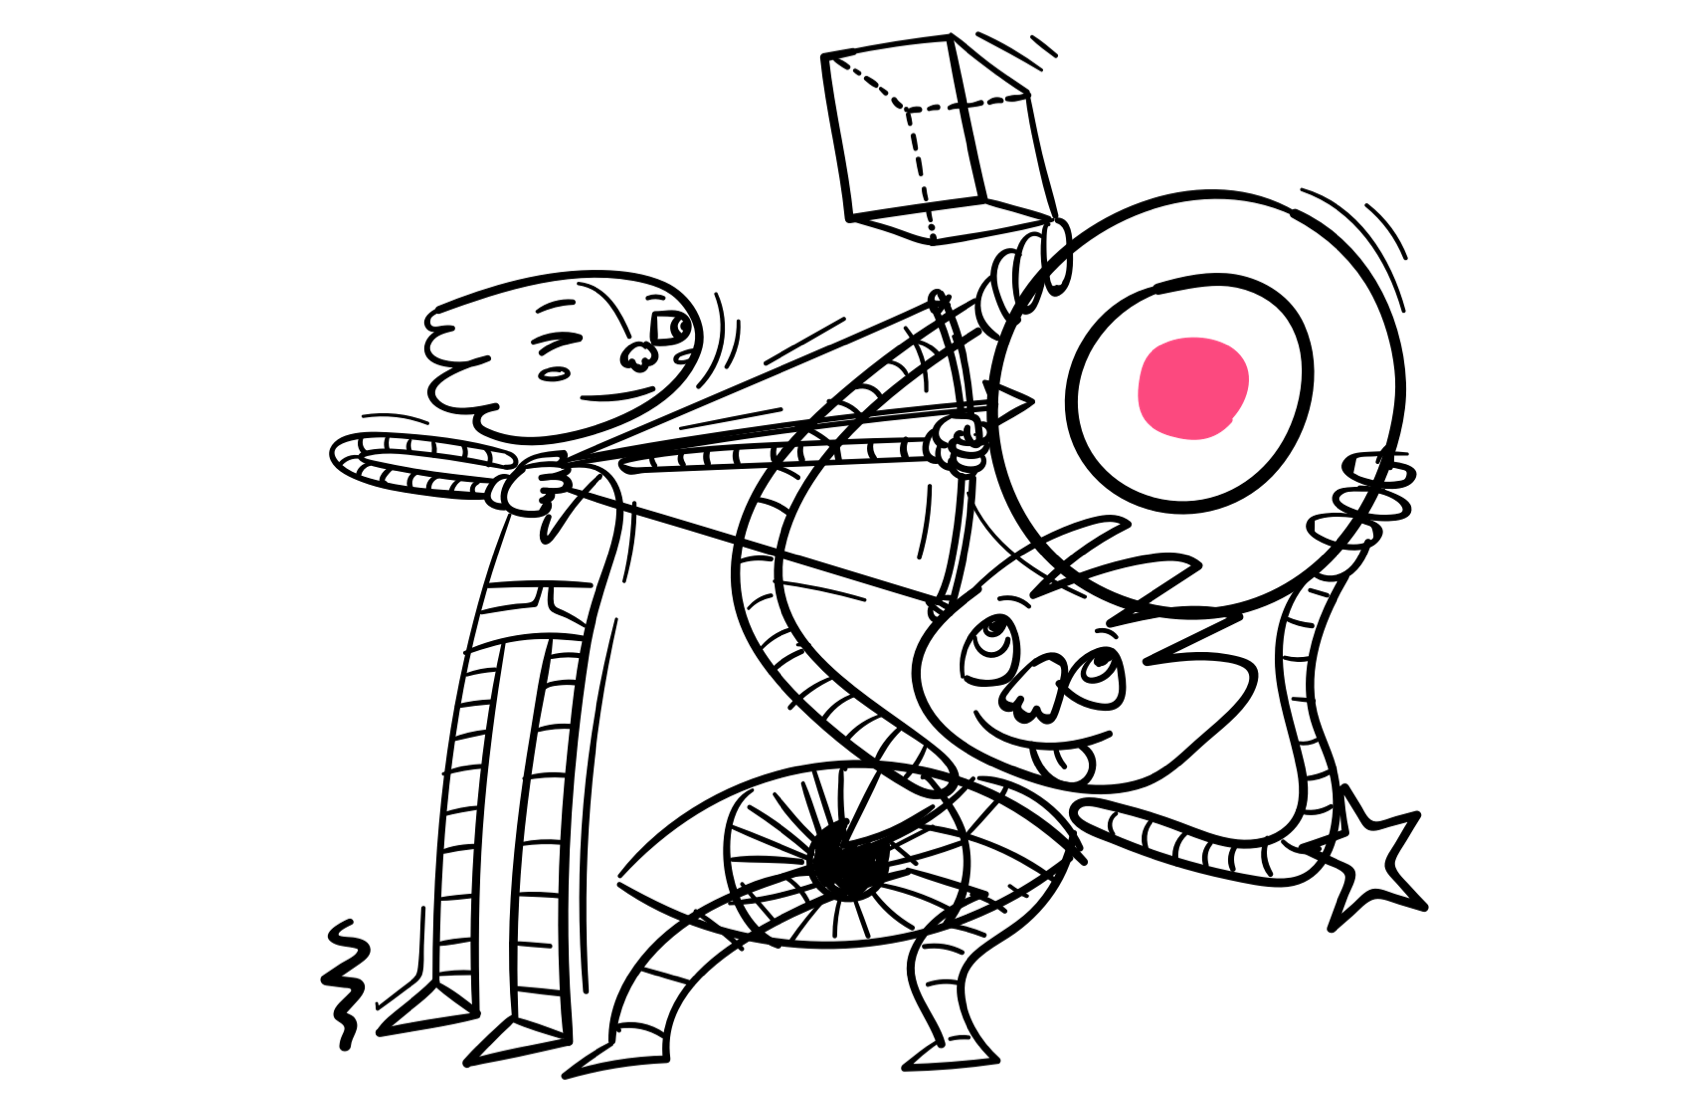 Illustration of person shooting an arrow at the target.